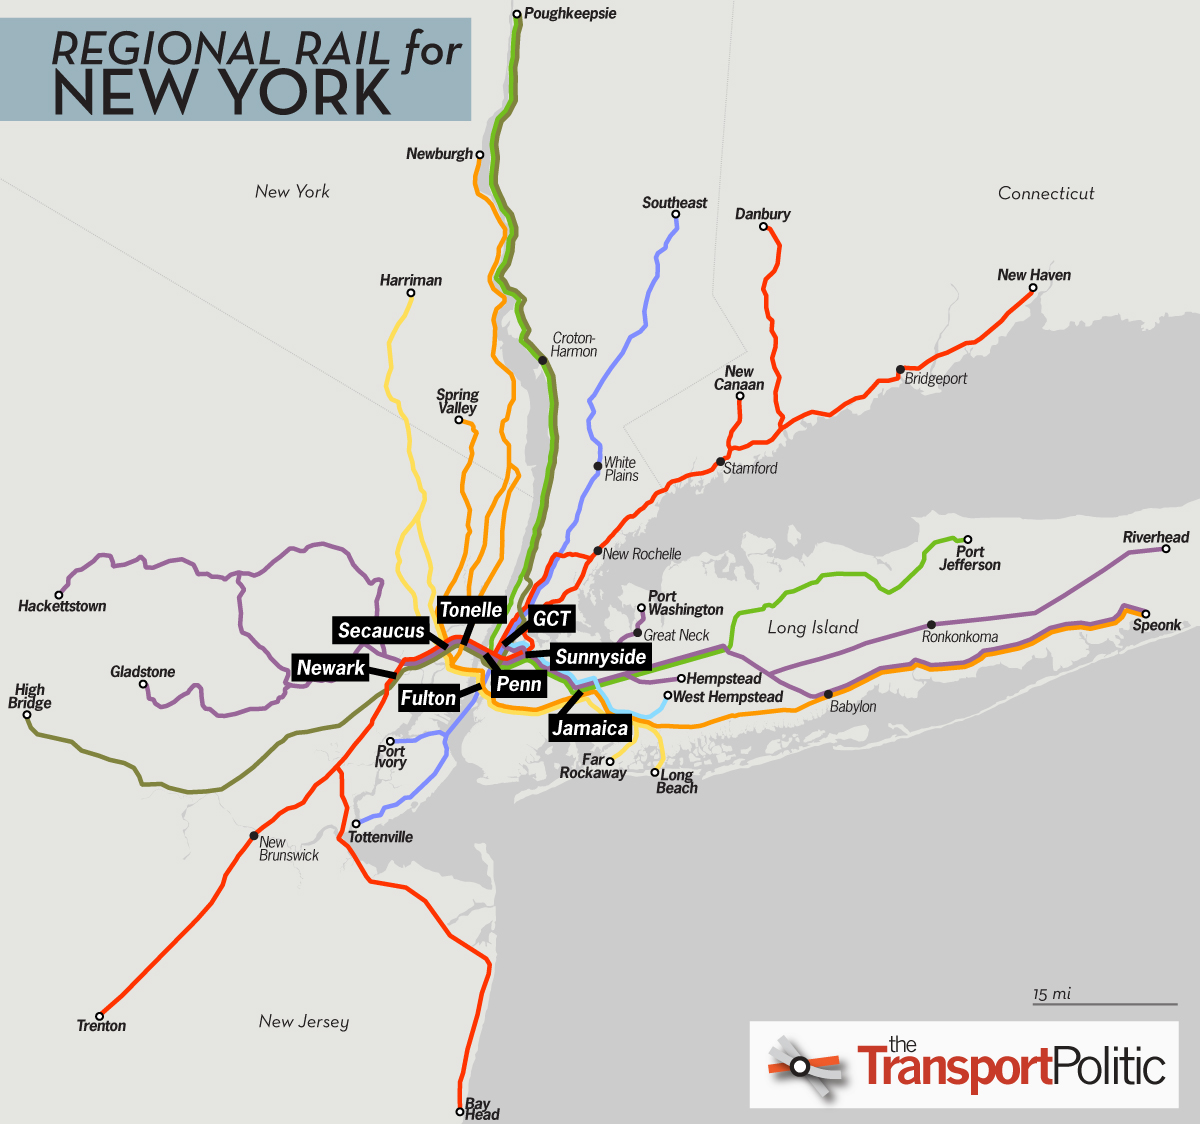 Map Of New York Rail System.Regional Rail For New York City Part Ii The Transport Politic